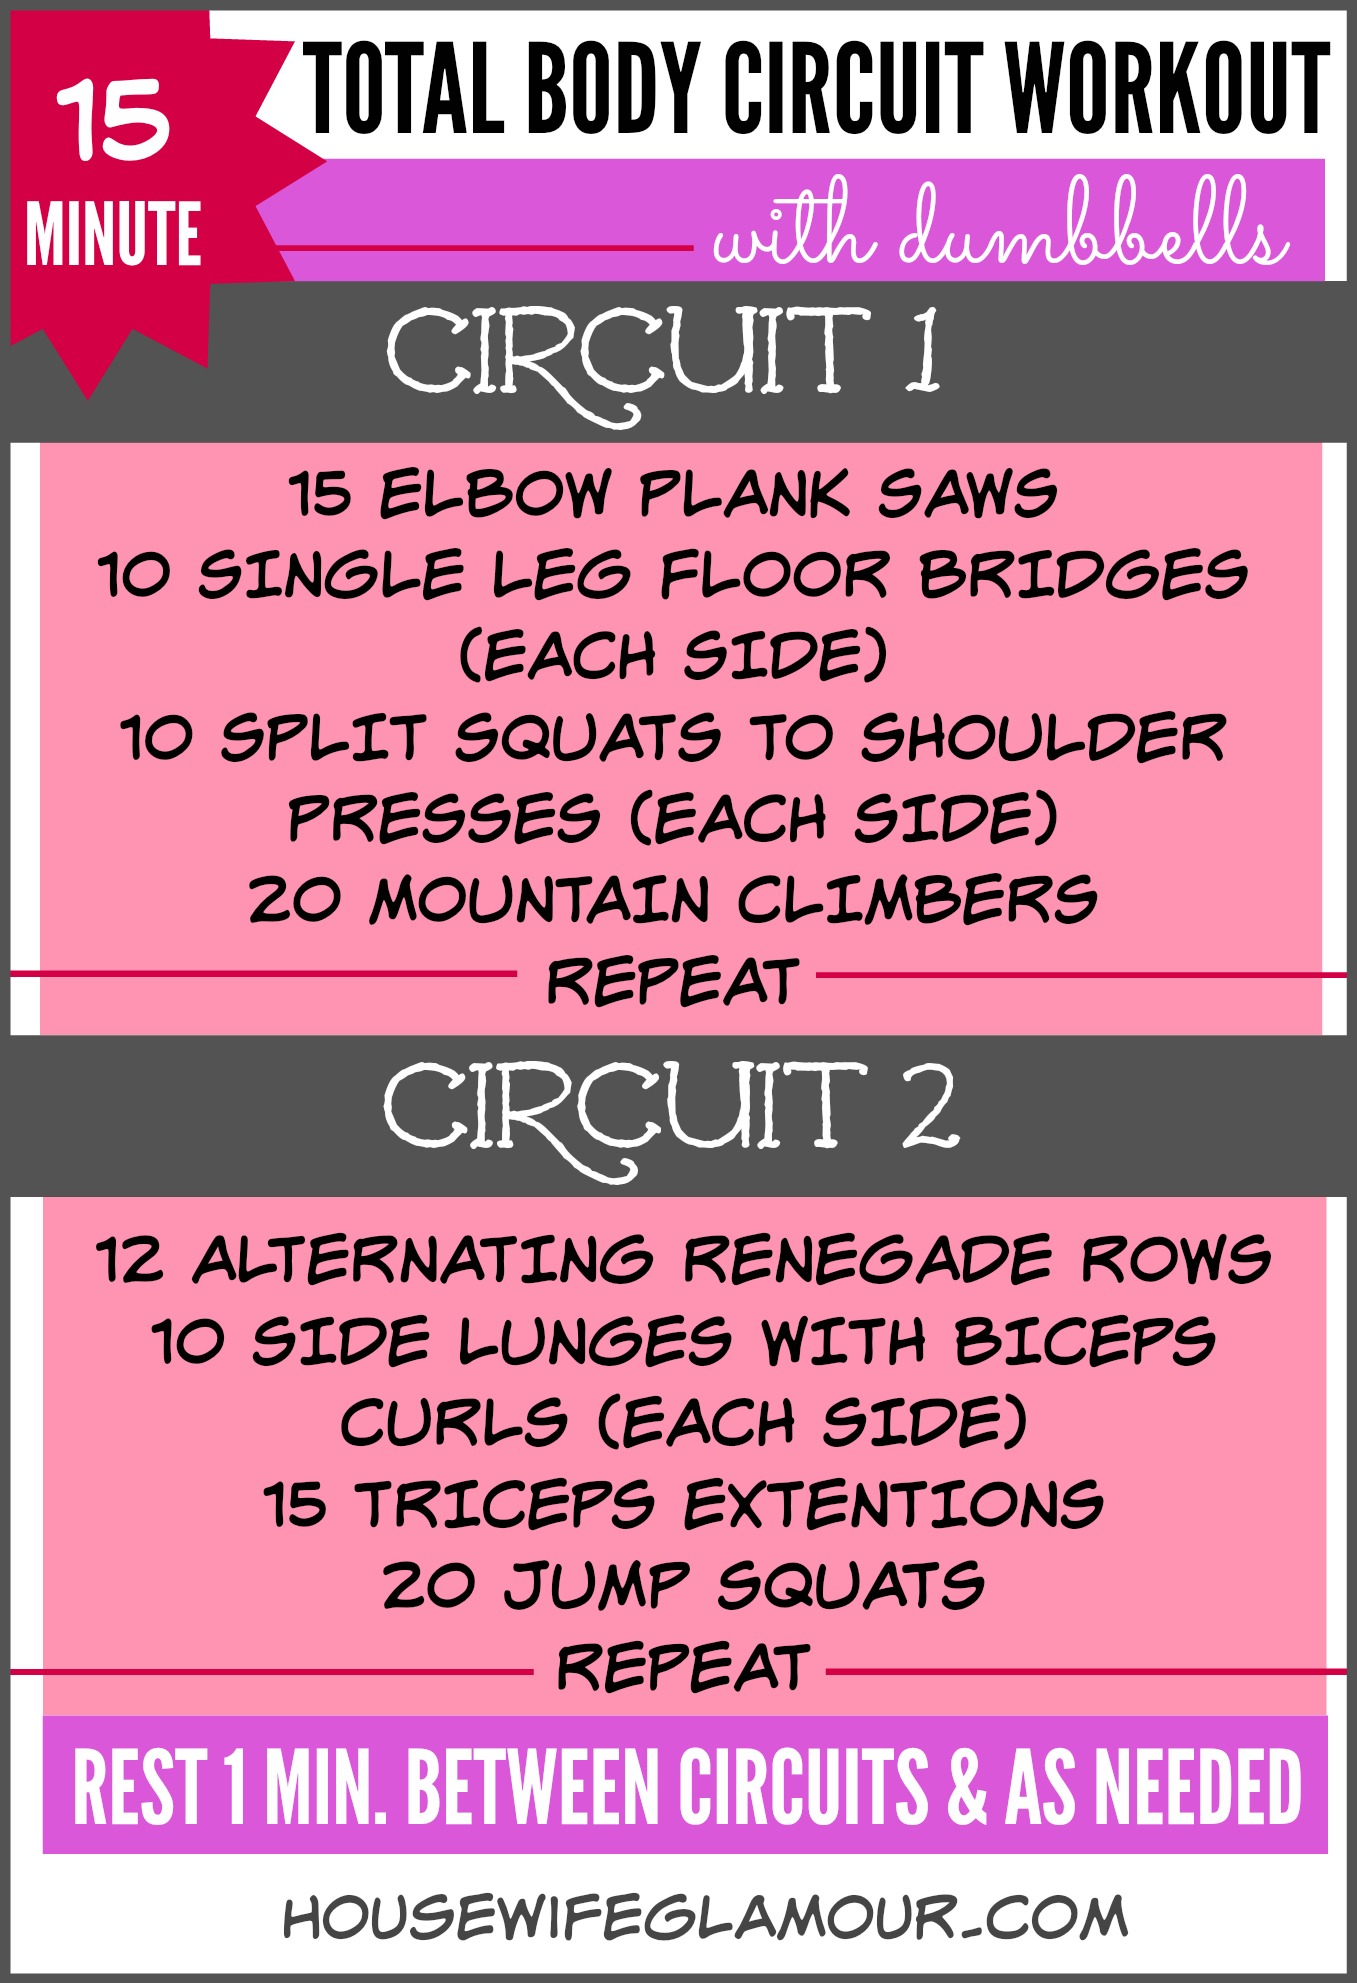 15 minute total body circuit dumbbell workout